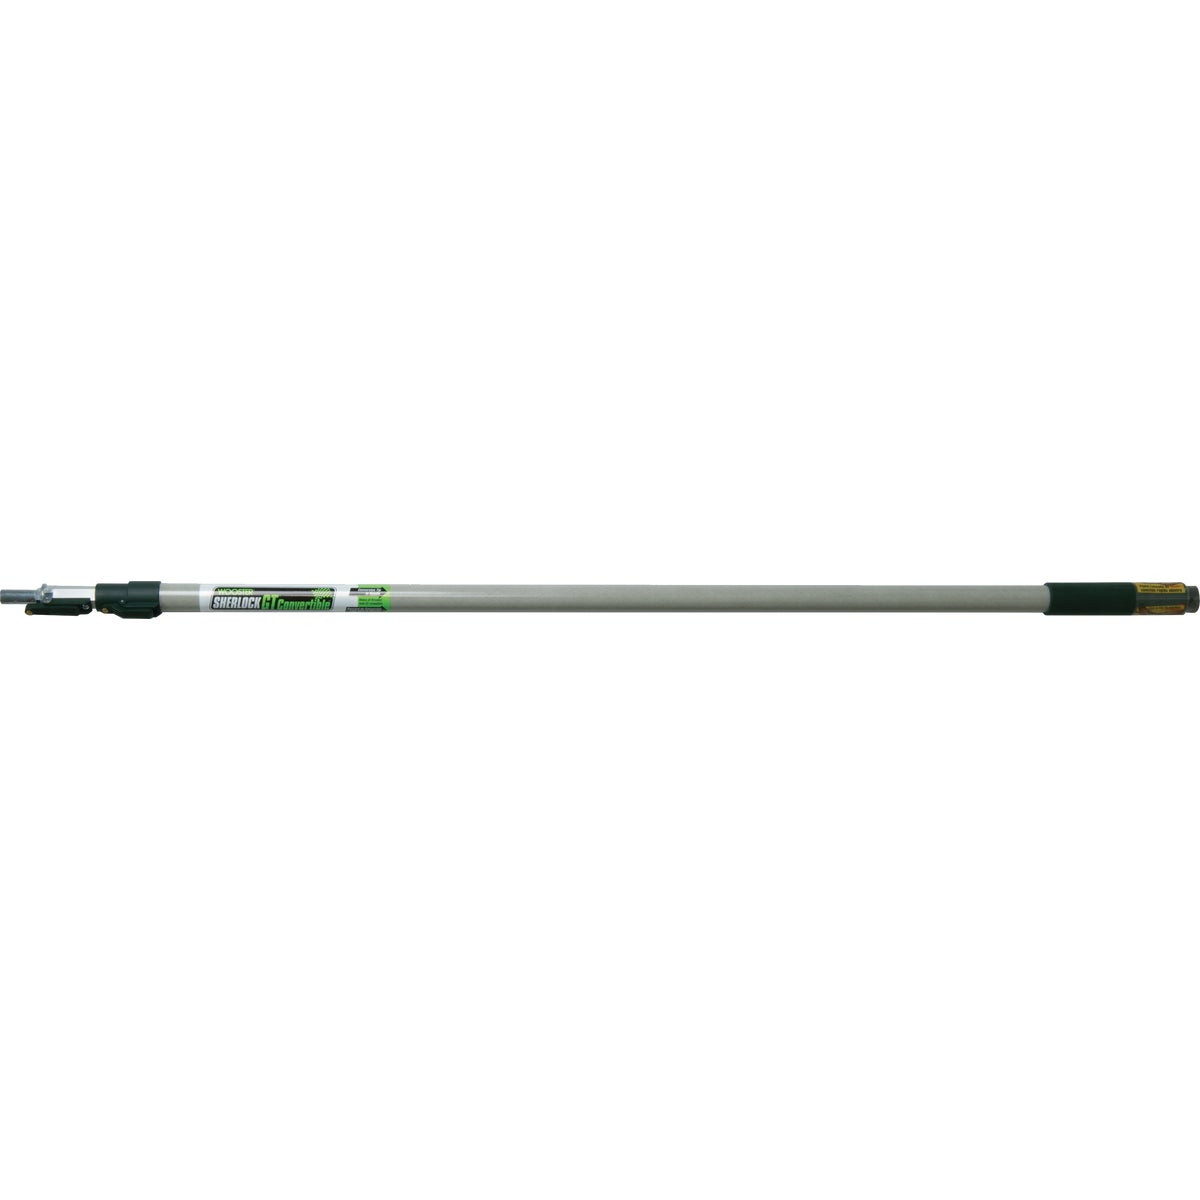 4-8 CONVERTBLE EXTN POLE - R091 by Wooster Brush Co